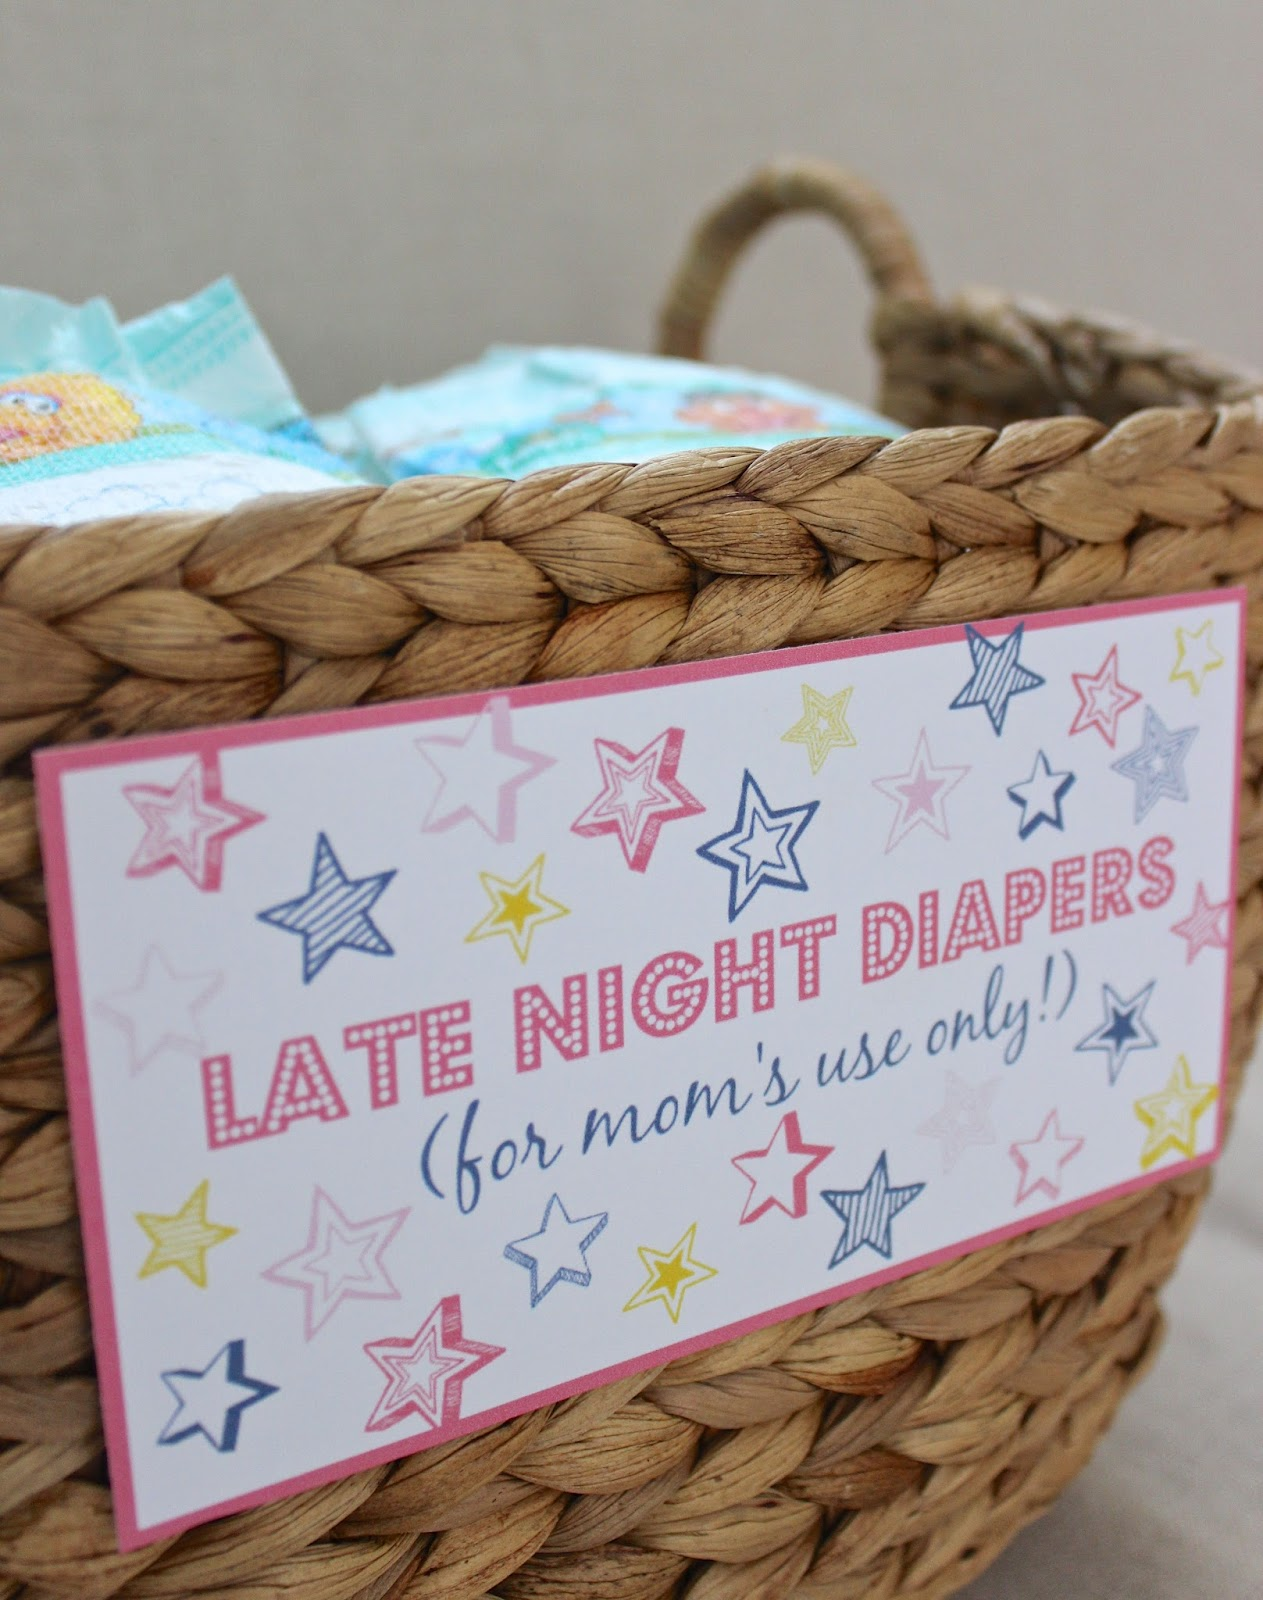 Late night diapers baby shower printables driven by decor for Baby shower decoration ideas with diapers